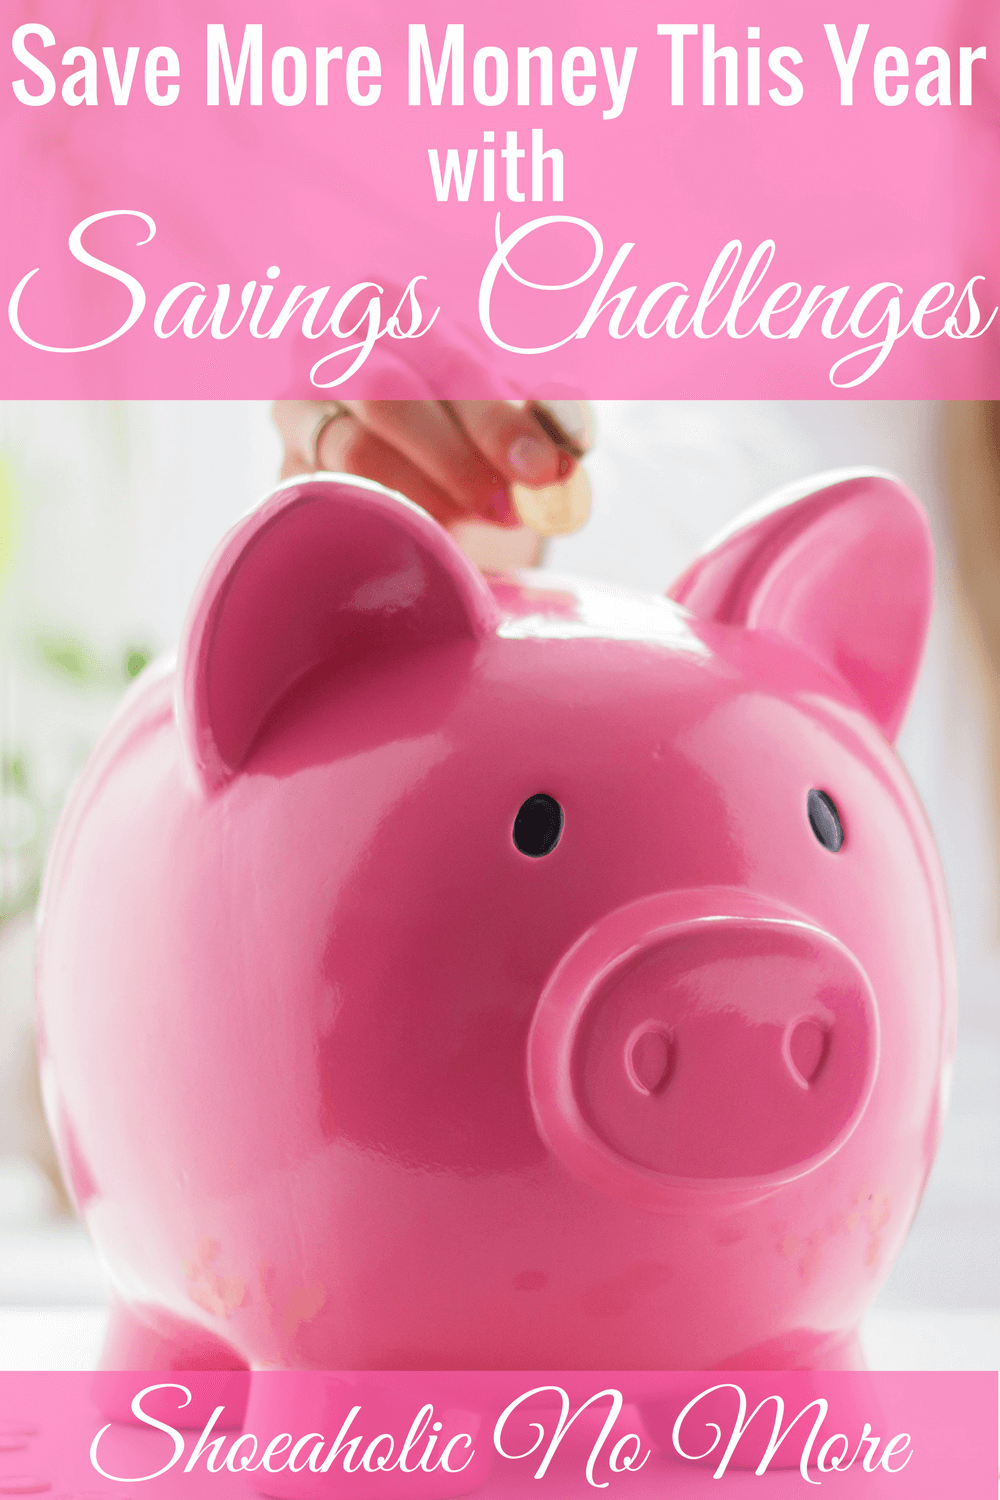 Want to save more money this year? Try some of these alternatives to the 52 week savings challenge!